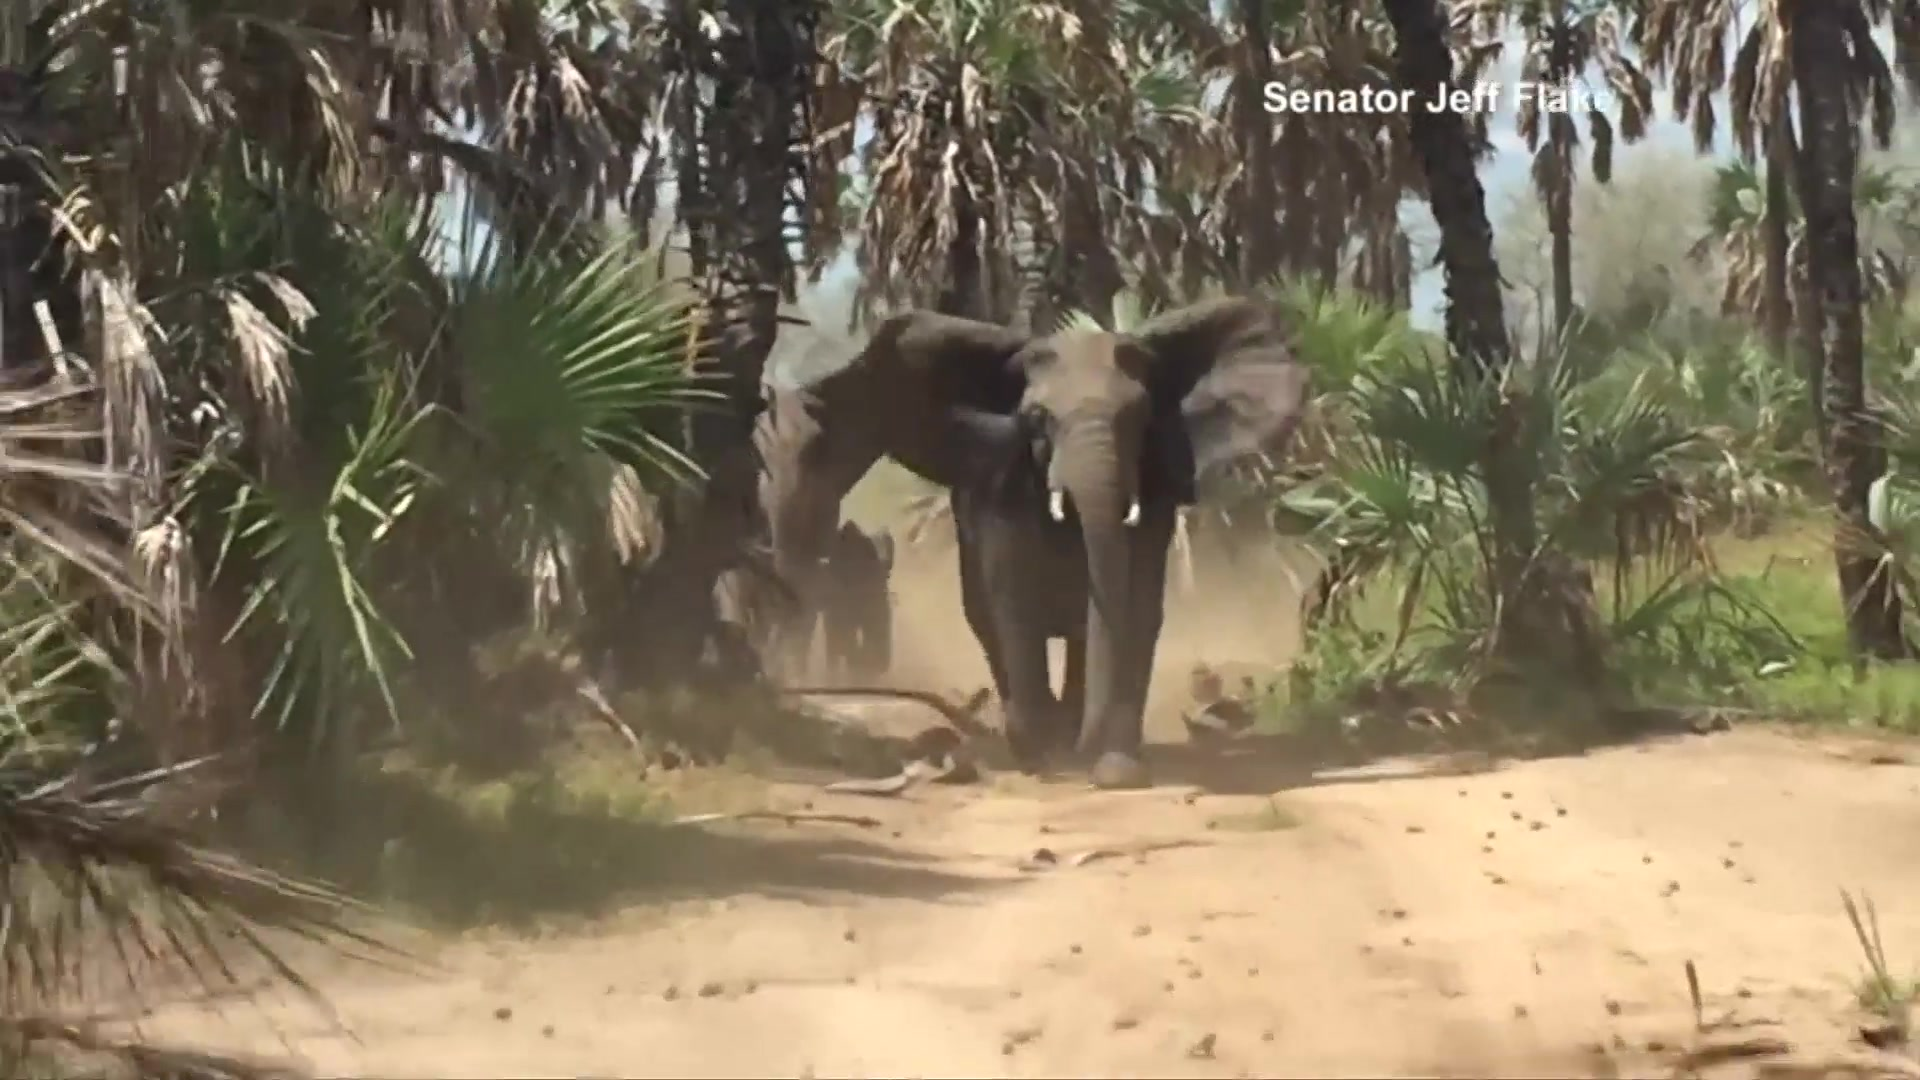 Elephants Chase U.S. Senator During Fact-Finding Trip